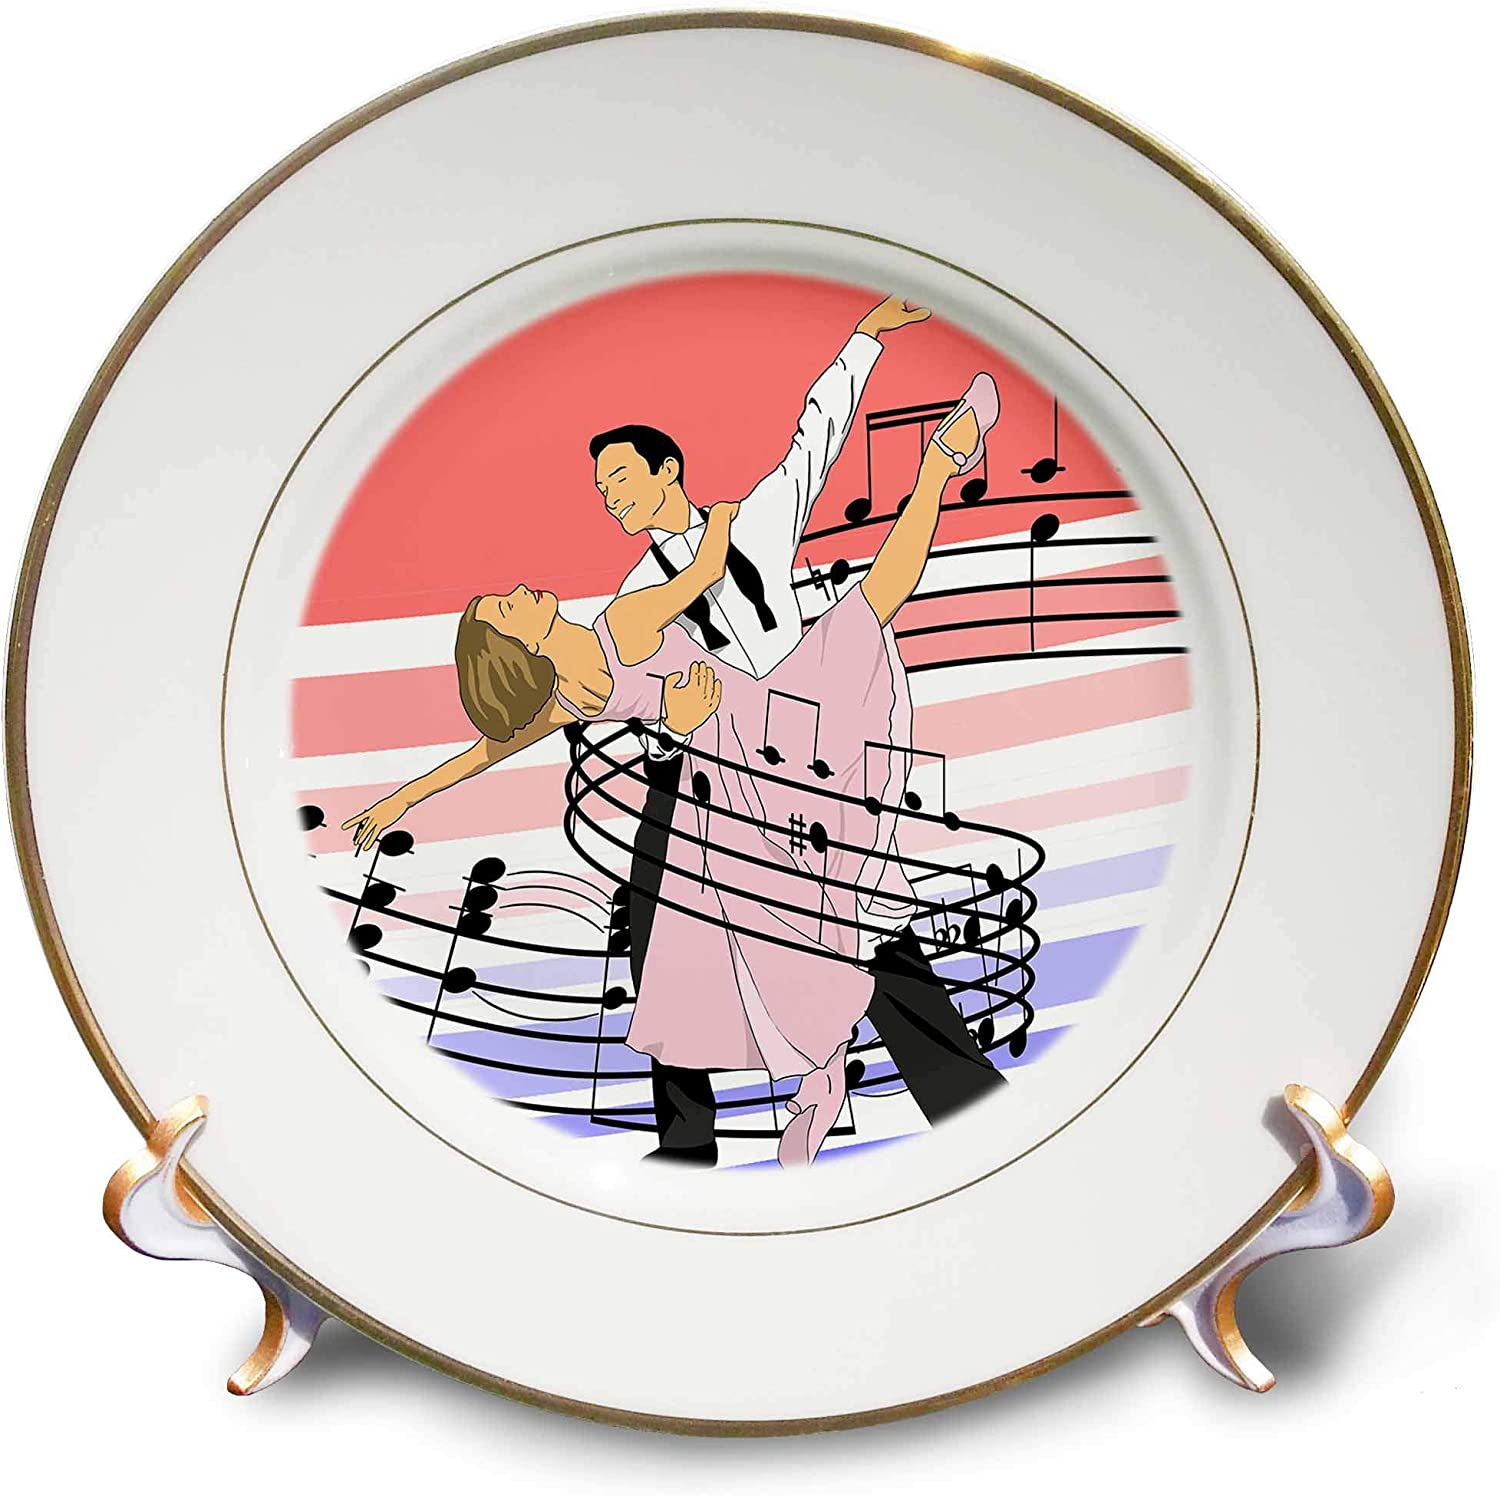 3dRose Macdonald Creative Studios – Dance - Dance Classic Ballroom Dancing of Dance Partners Wrapped in Music - 8 inch Porcelain Plate (cp_323207_1)